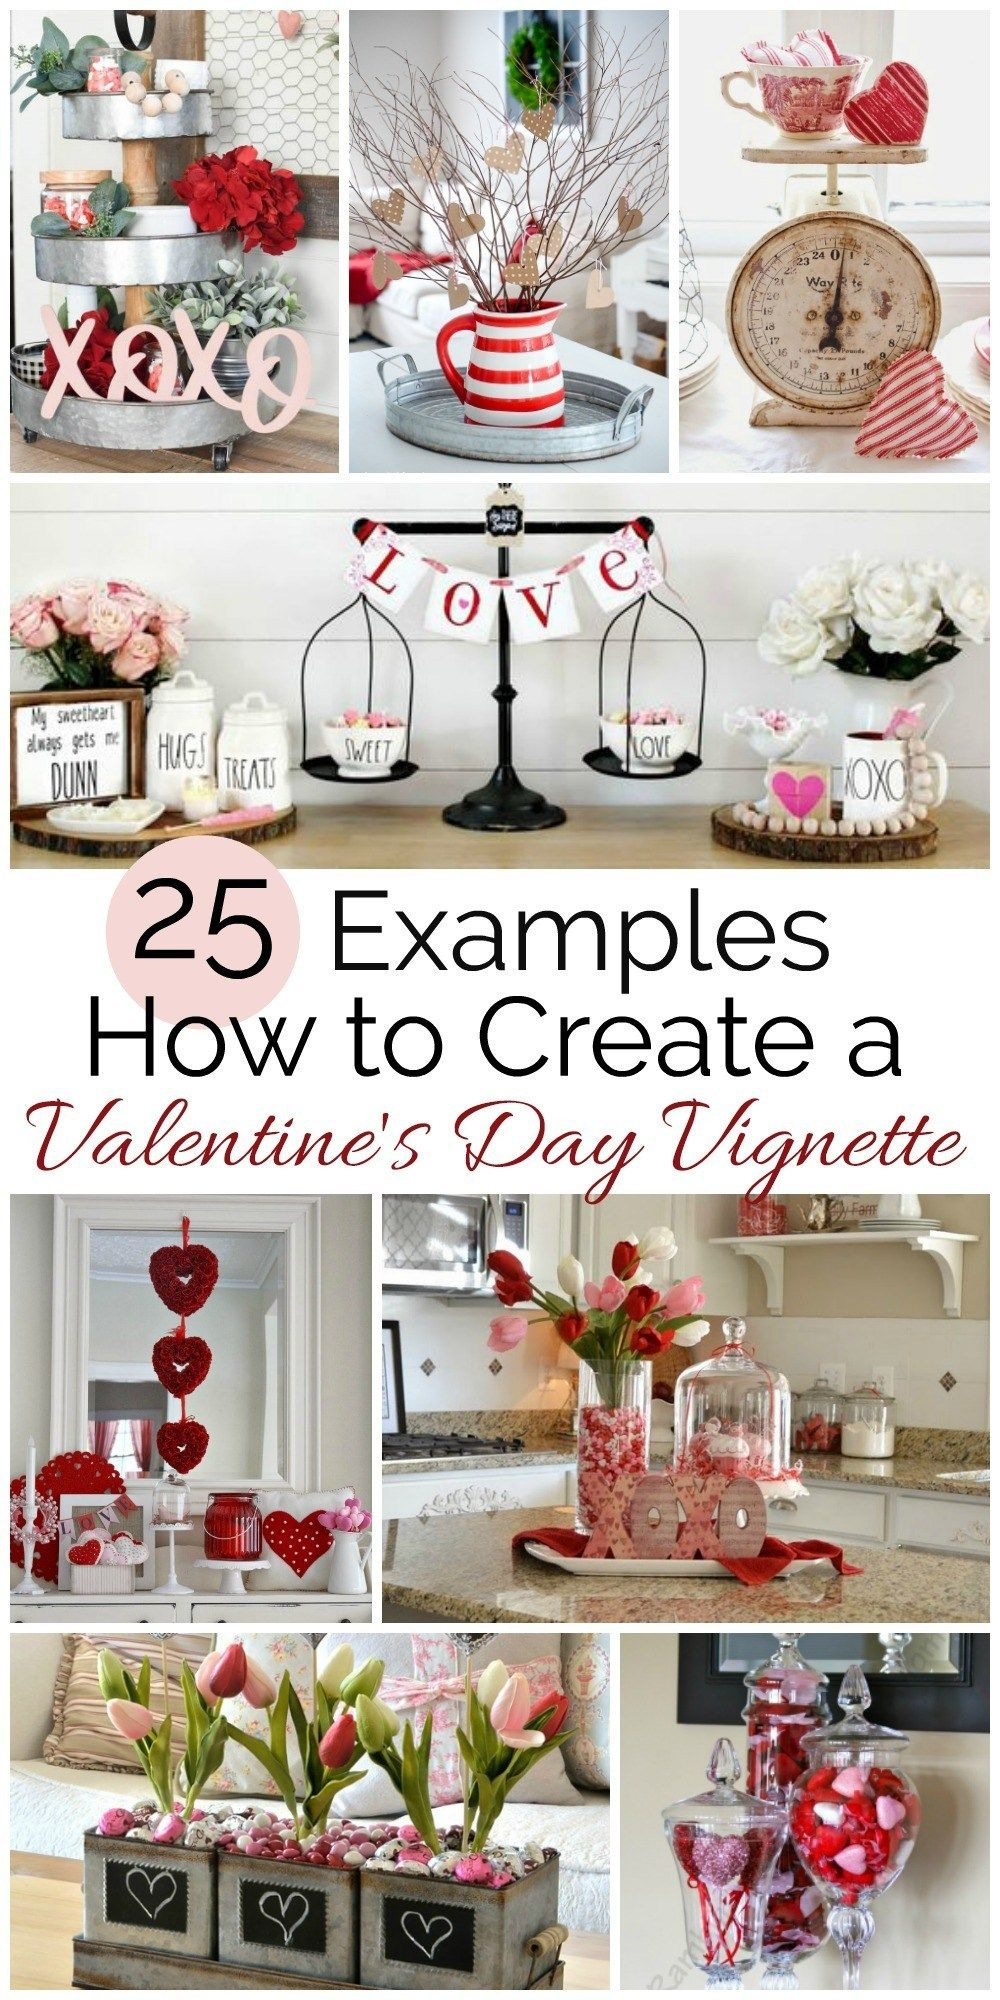 Tips for Creating a Valentine's Day Vignette - Diy valentine's day decorations, Diy valentines decorations, Valentines day decorations, Valentines diy, Valentine's home decoration, Valentine decorations - Learn some tips for creating an Valentine's Day vignette  We look at examples of 25 different stunning vignettes and talk about the details in them